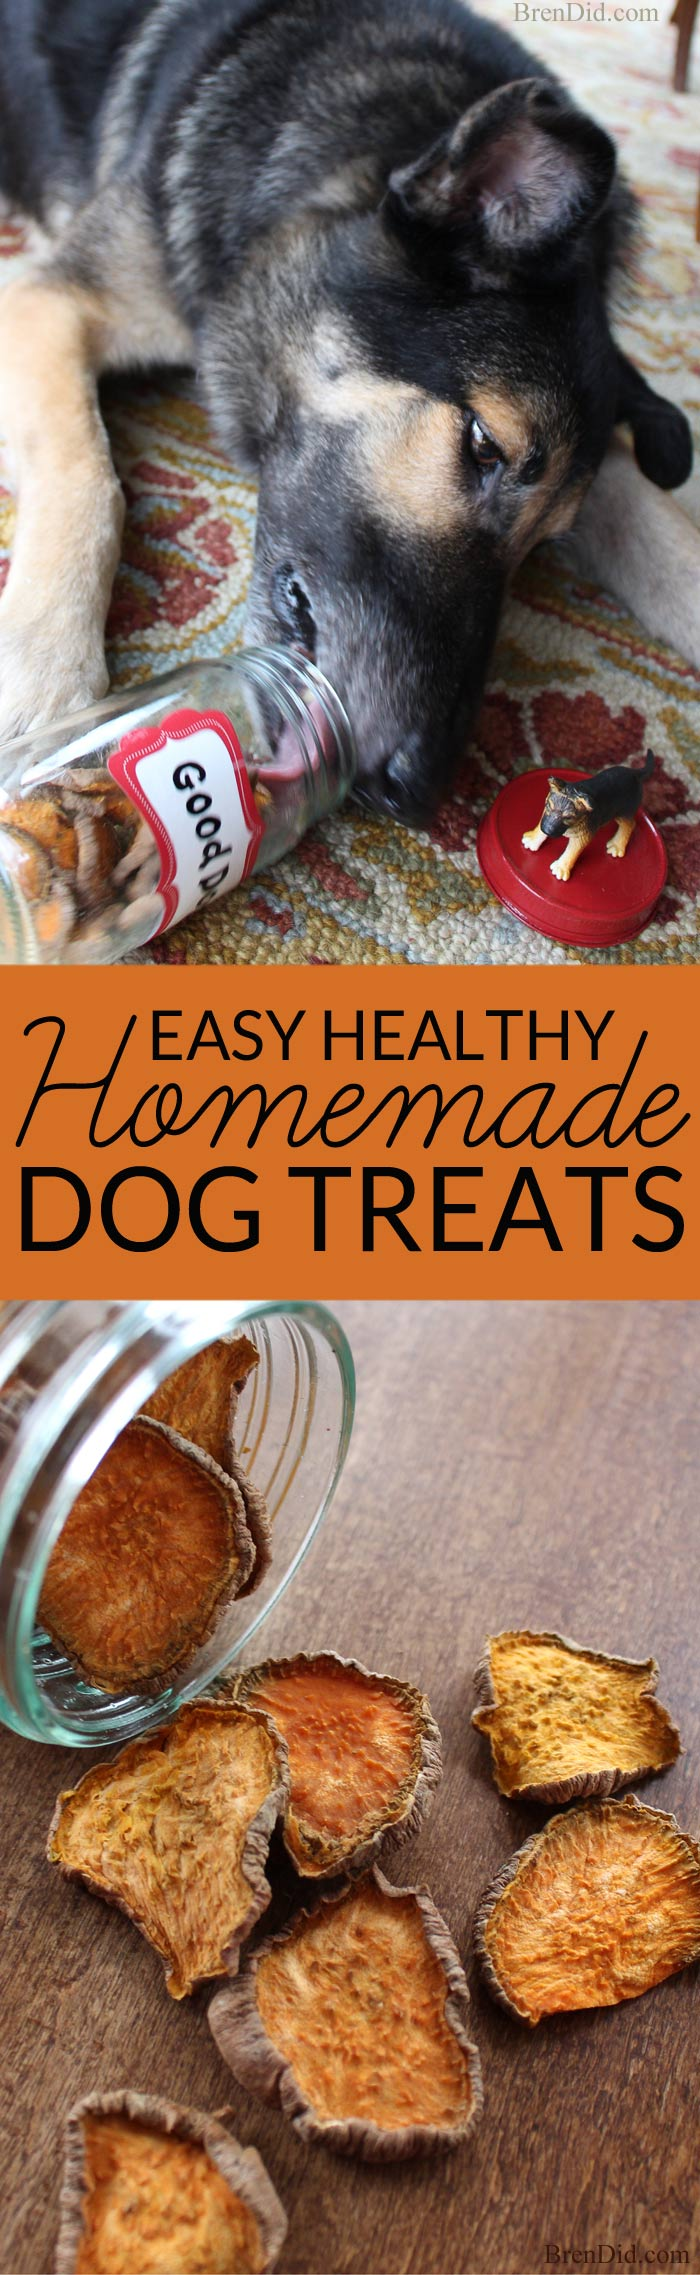 Can You Make Dog Treats At Home And Sell Them